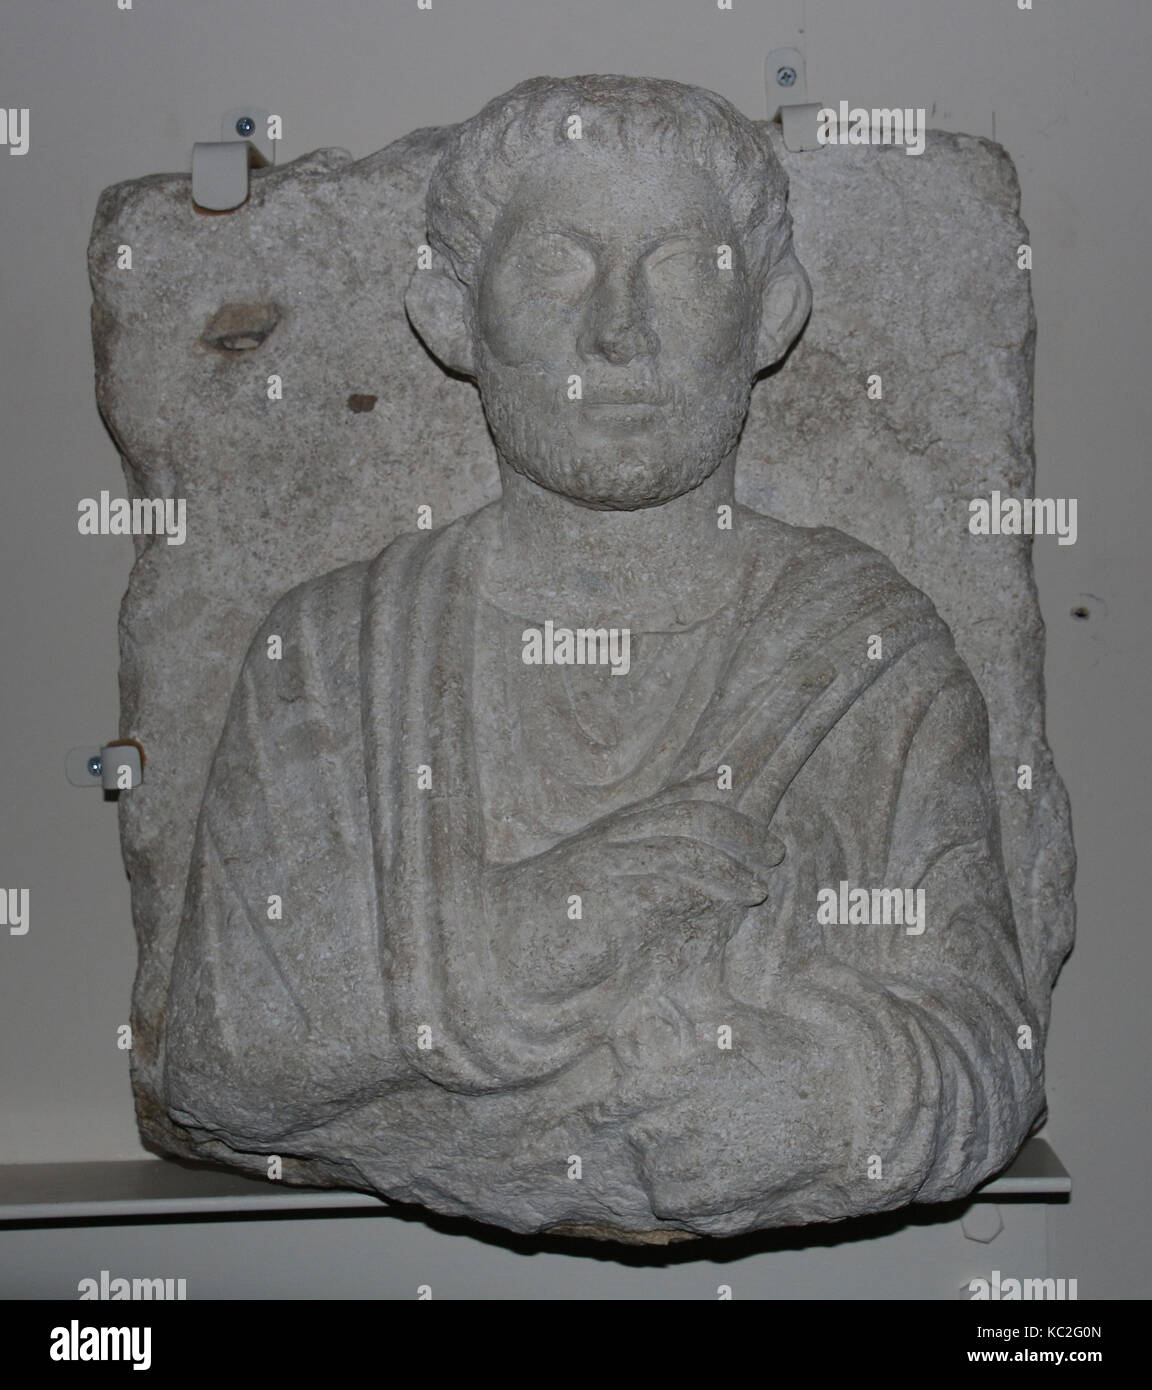 Funerary relief, ca. 200–273, Syria, probably from Palmyra, Limestone, 19 1/8 x 17 x 9 1/2 in. (48.6 x 43.2 x 24.1 - Stock Image